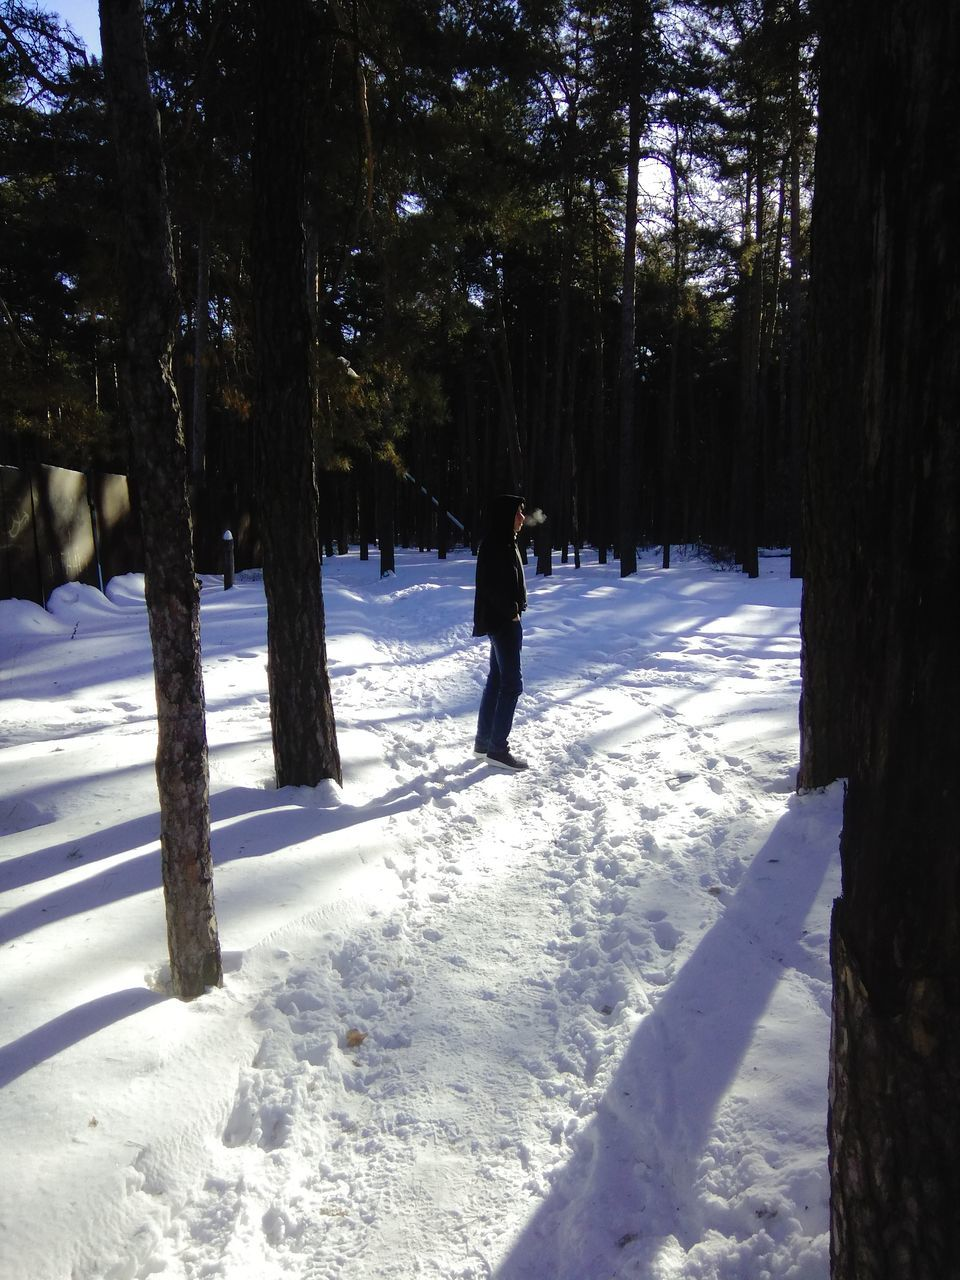 snow, winter, cold temperature, tree, nature, weather, beauty in nature, white color, tranquility, tranquil scene, scenics, tree trunk, field, landscape, frozen, outdoors, forest, day, sunlight, full length, growth, leisure activity, real people, shadow, one person, ski holiday, warm clothing, people